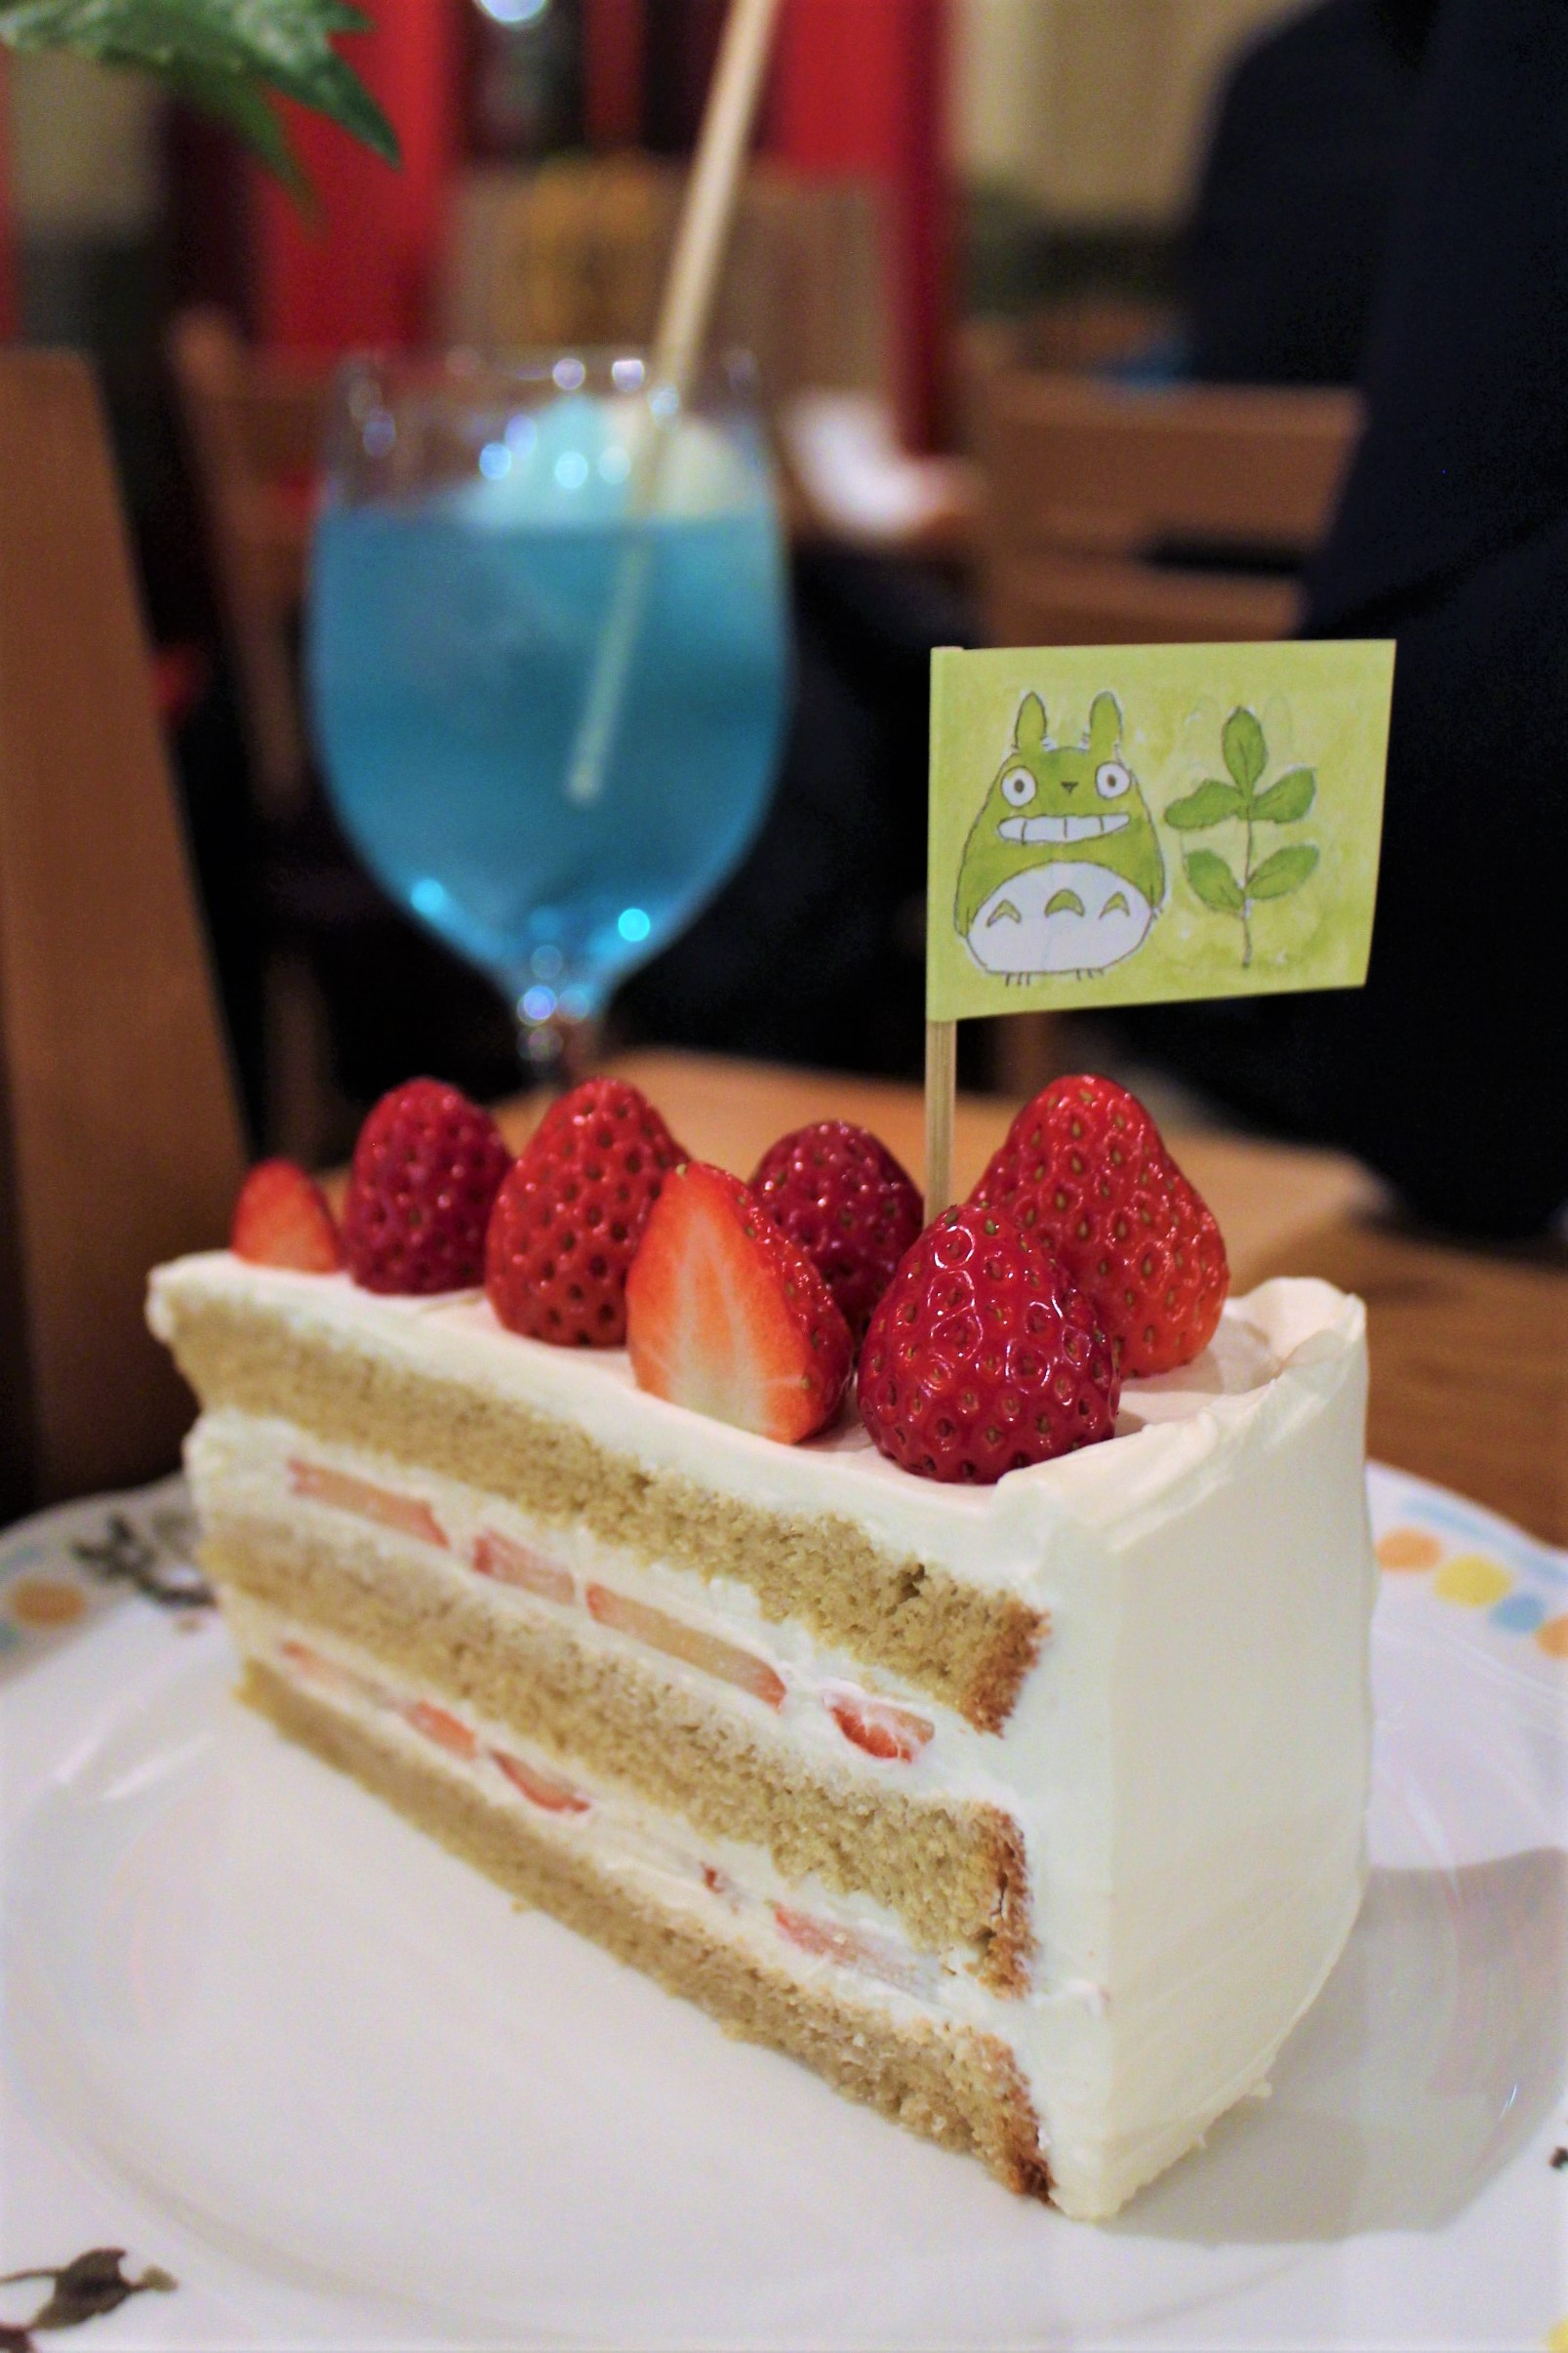 Strawberry Shortcake at Straw Hat Cafe in Tokyo, Japan